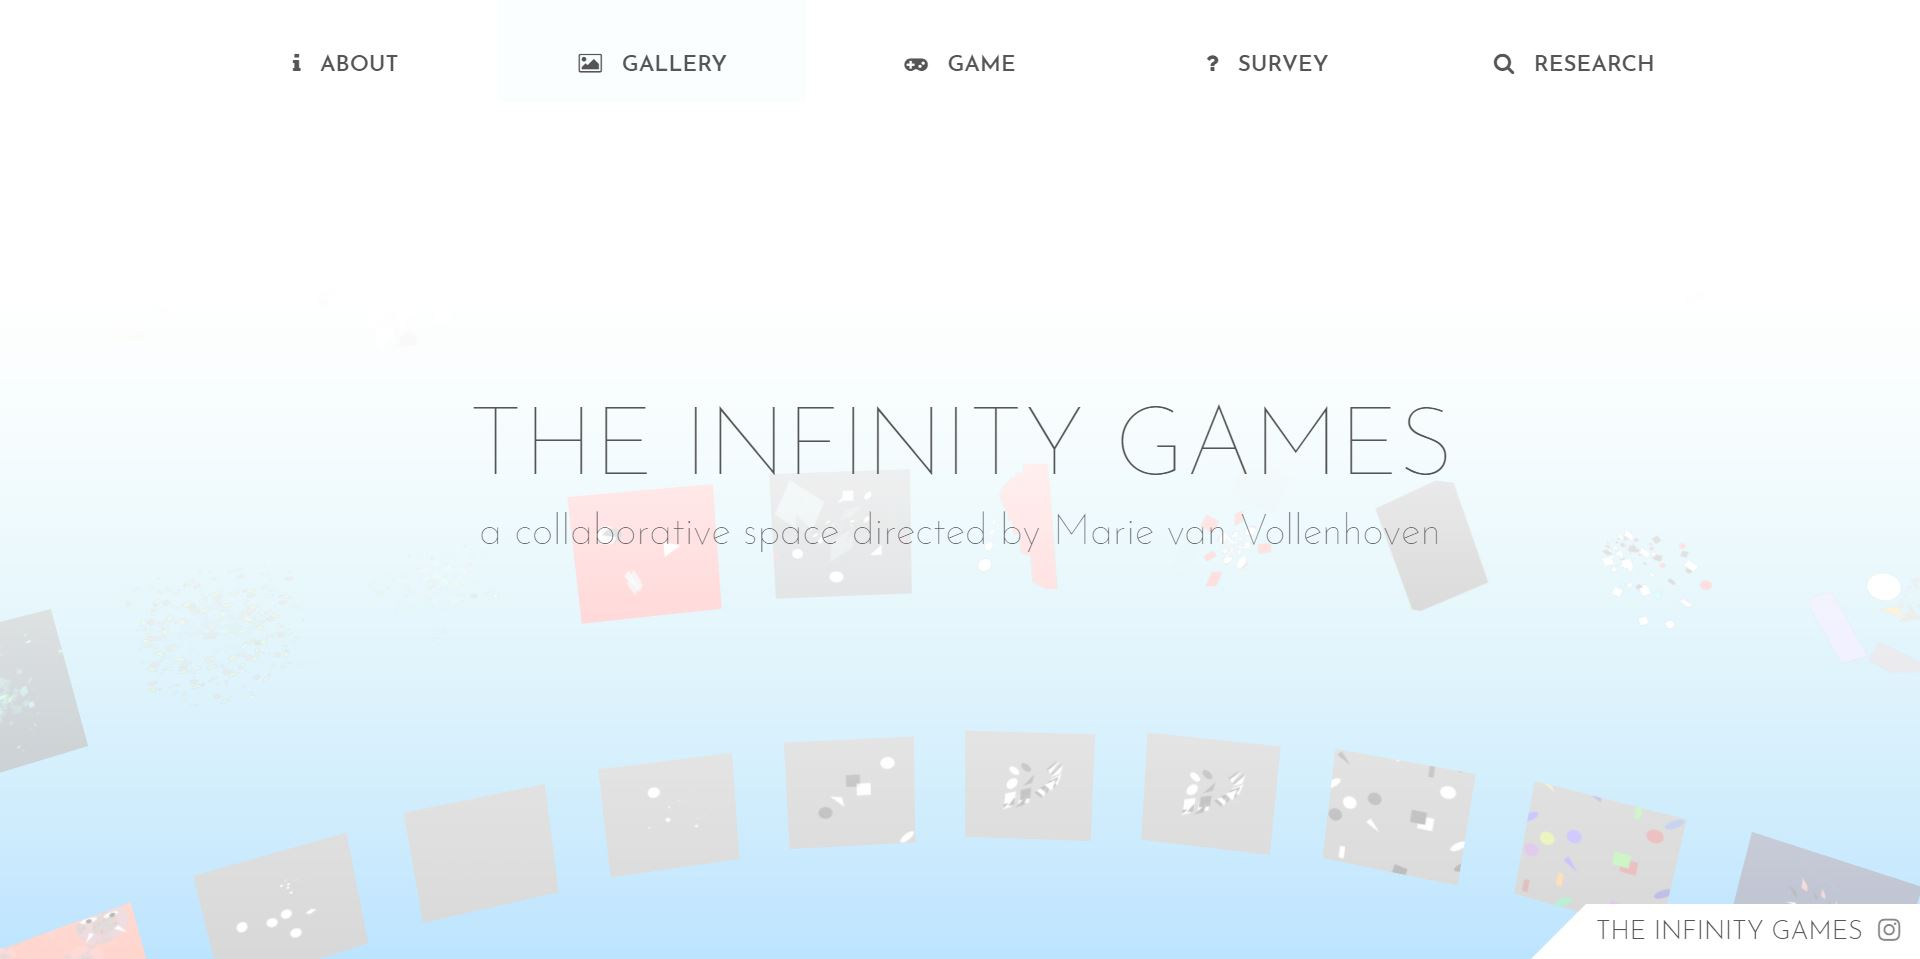 THE INFINITY GAMES